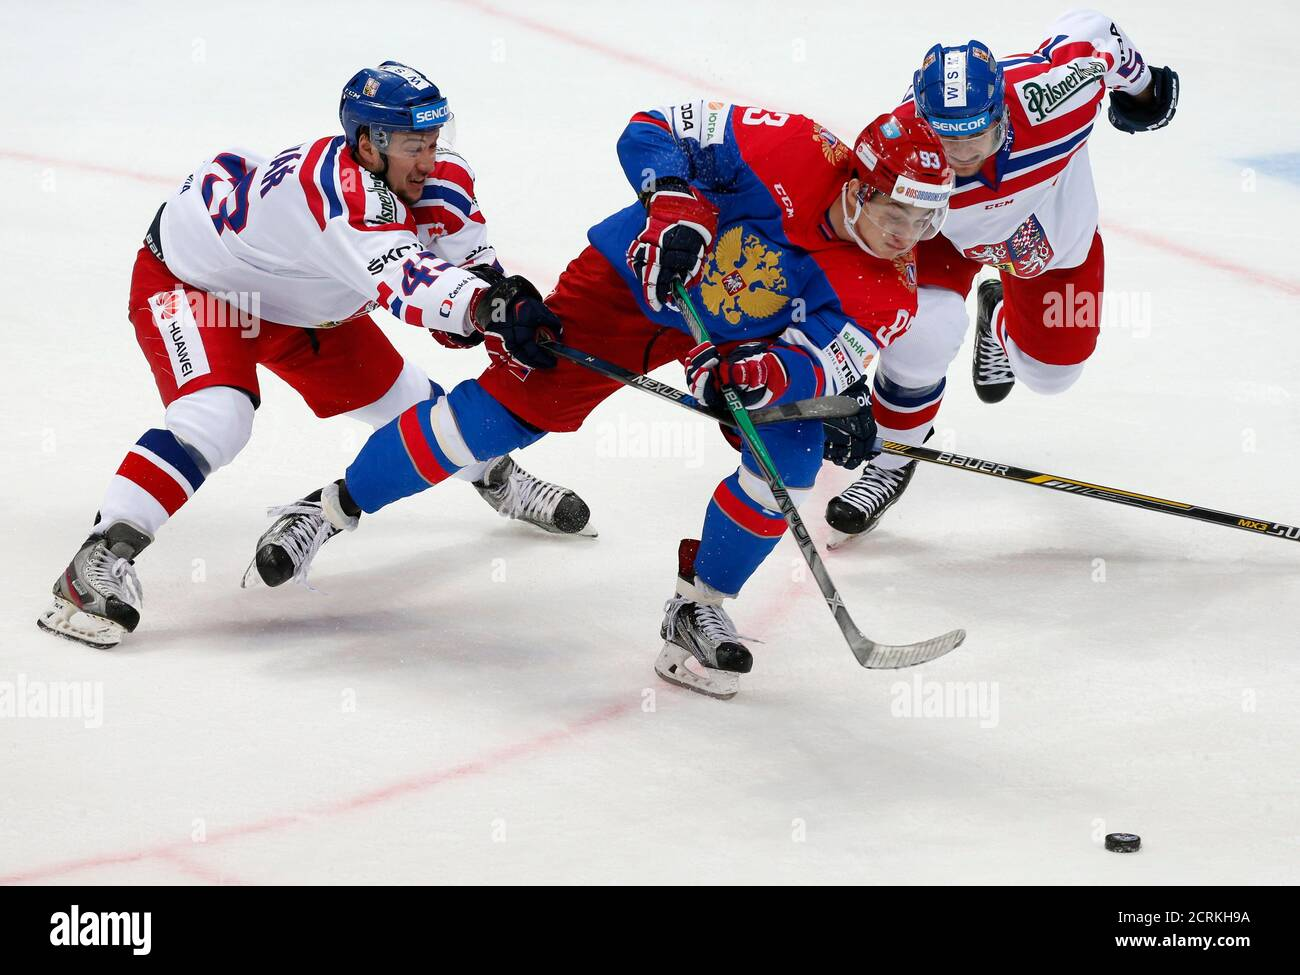 Czech Republic's Jan Kovar (L) and Jakub Jerabek chase Russia's Nikolay Prokhorkin (C) during their Channel One Cup ice hockey game in Moscow, Russia, December 20, 2015. REUTERS/Maxim Zmeyev Stock Photo